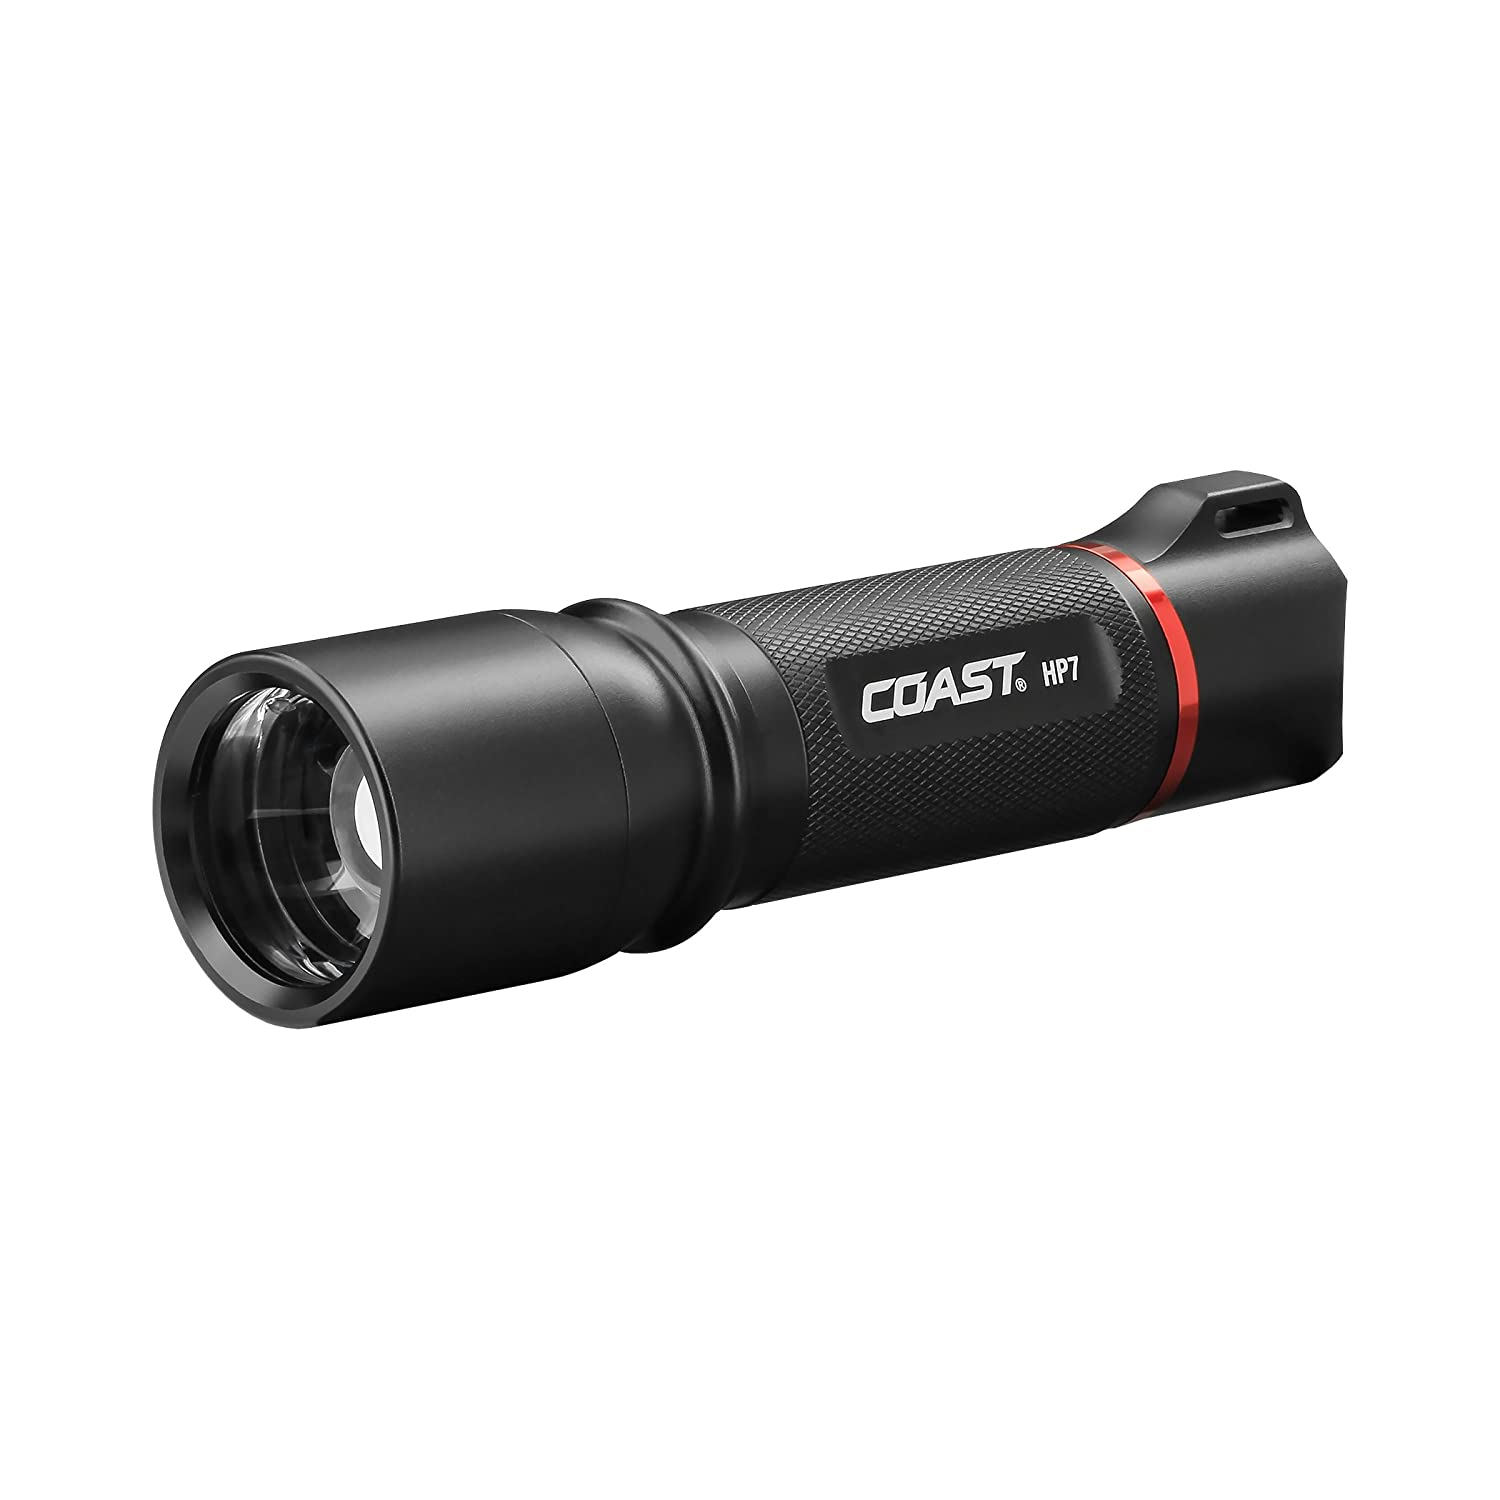 COAST HP7 530 Lumen Focusing LED Flashlight with Slide Focus and Beam Lock